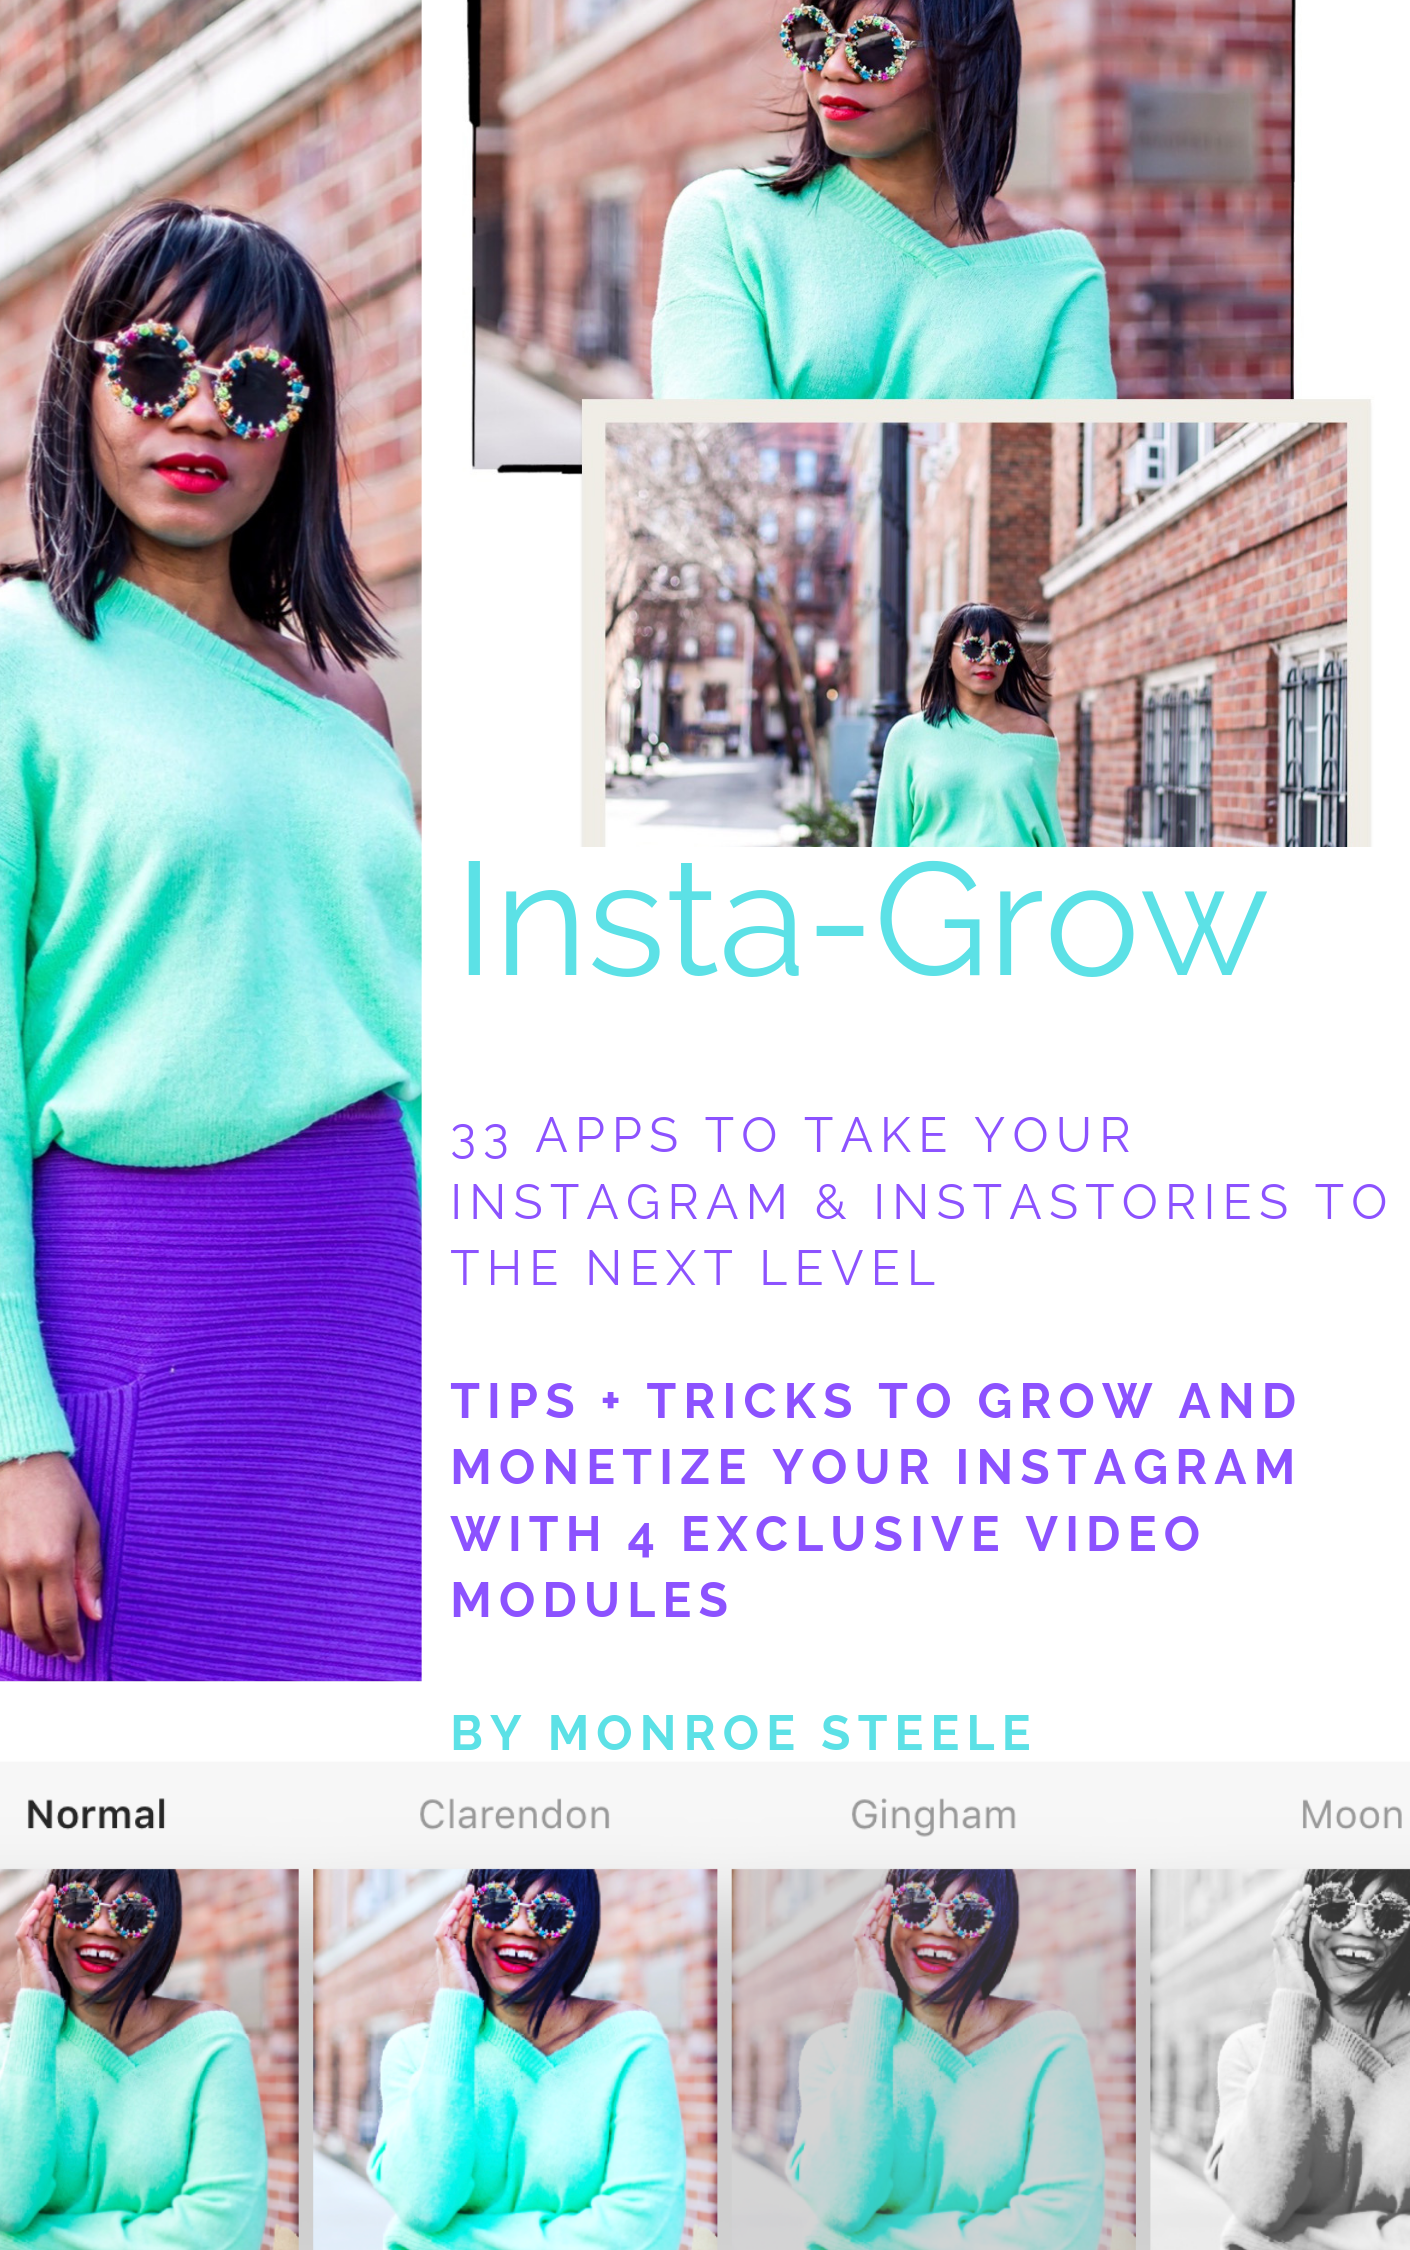 INSTAGROW 33 Apps to Level Up Your Instagram